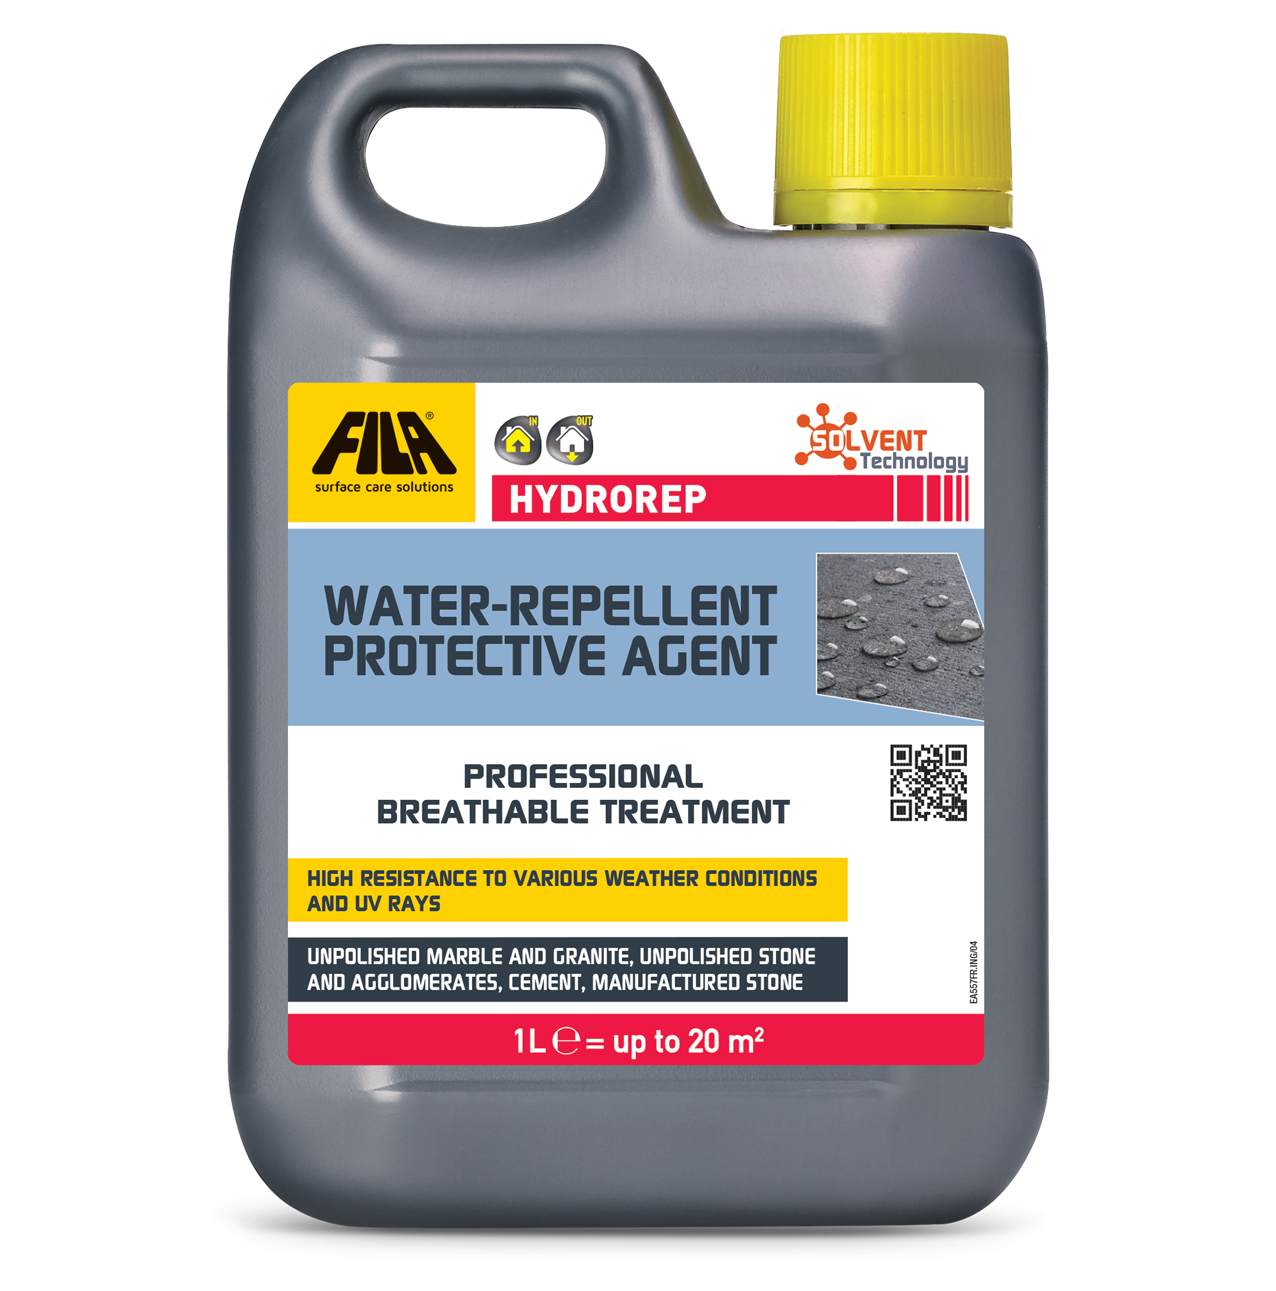 Thumbnail HYDROREP - Water-repellent protective agent